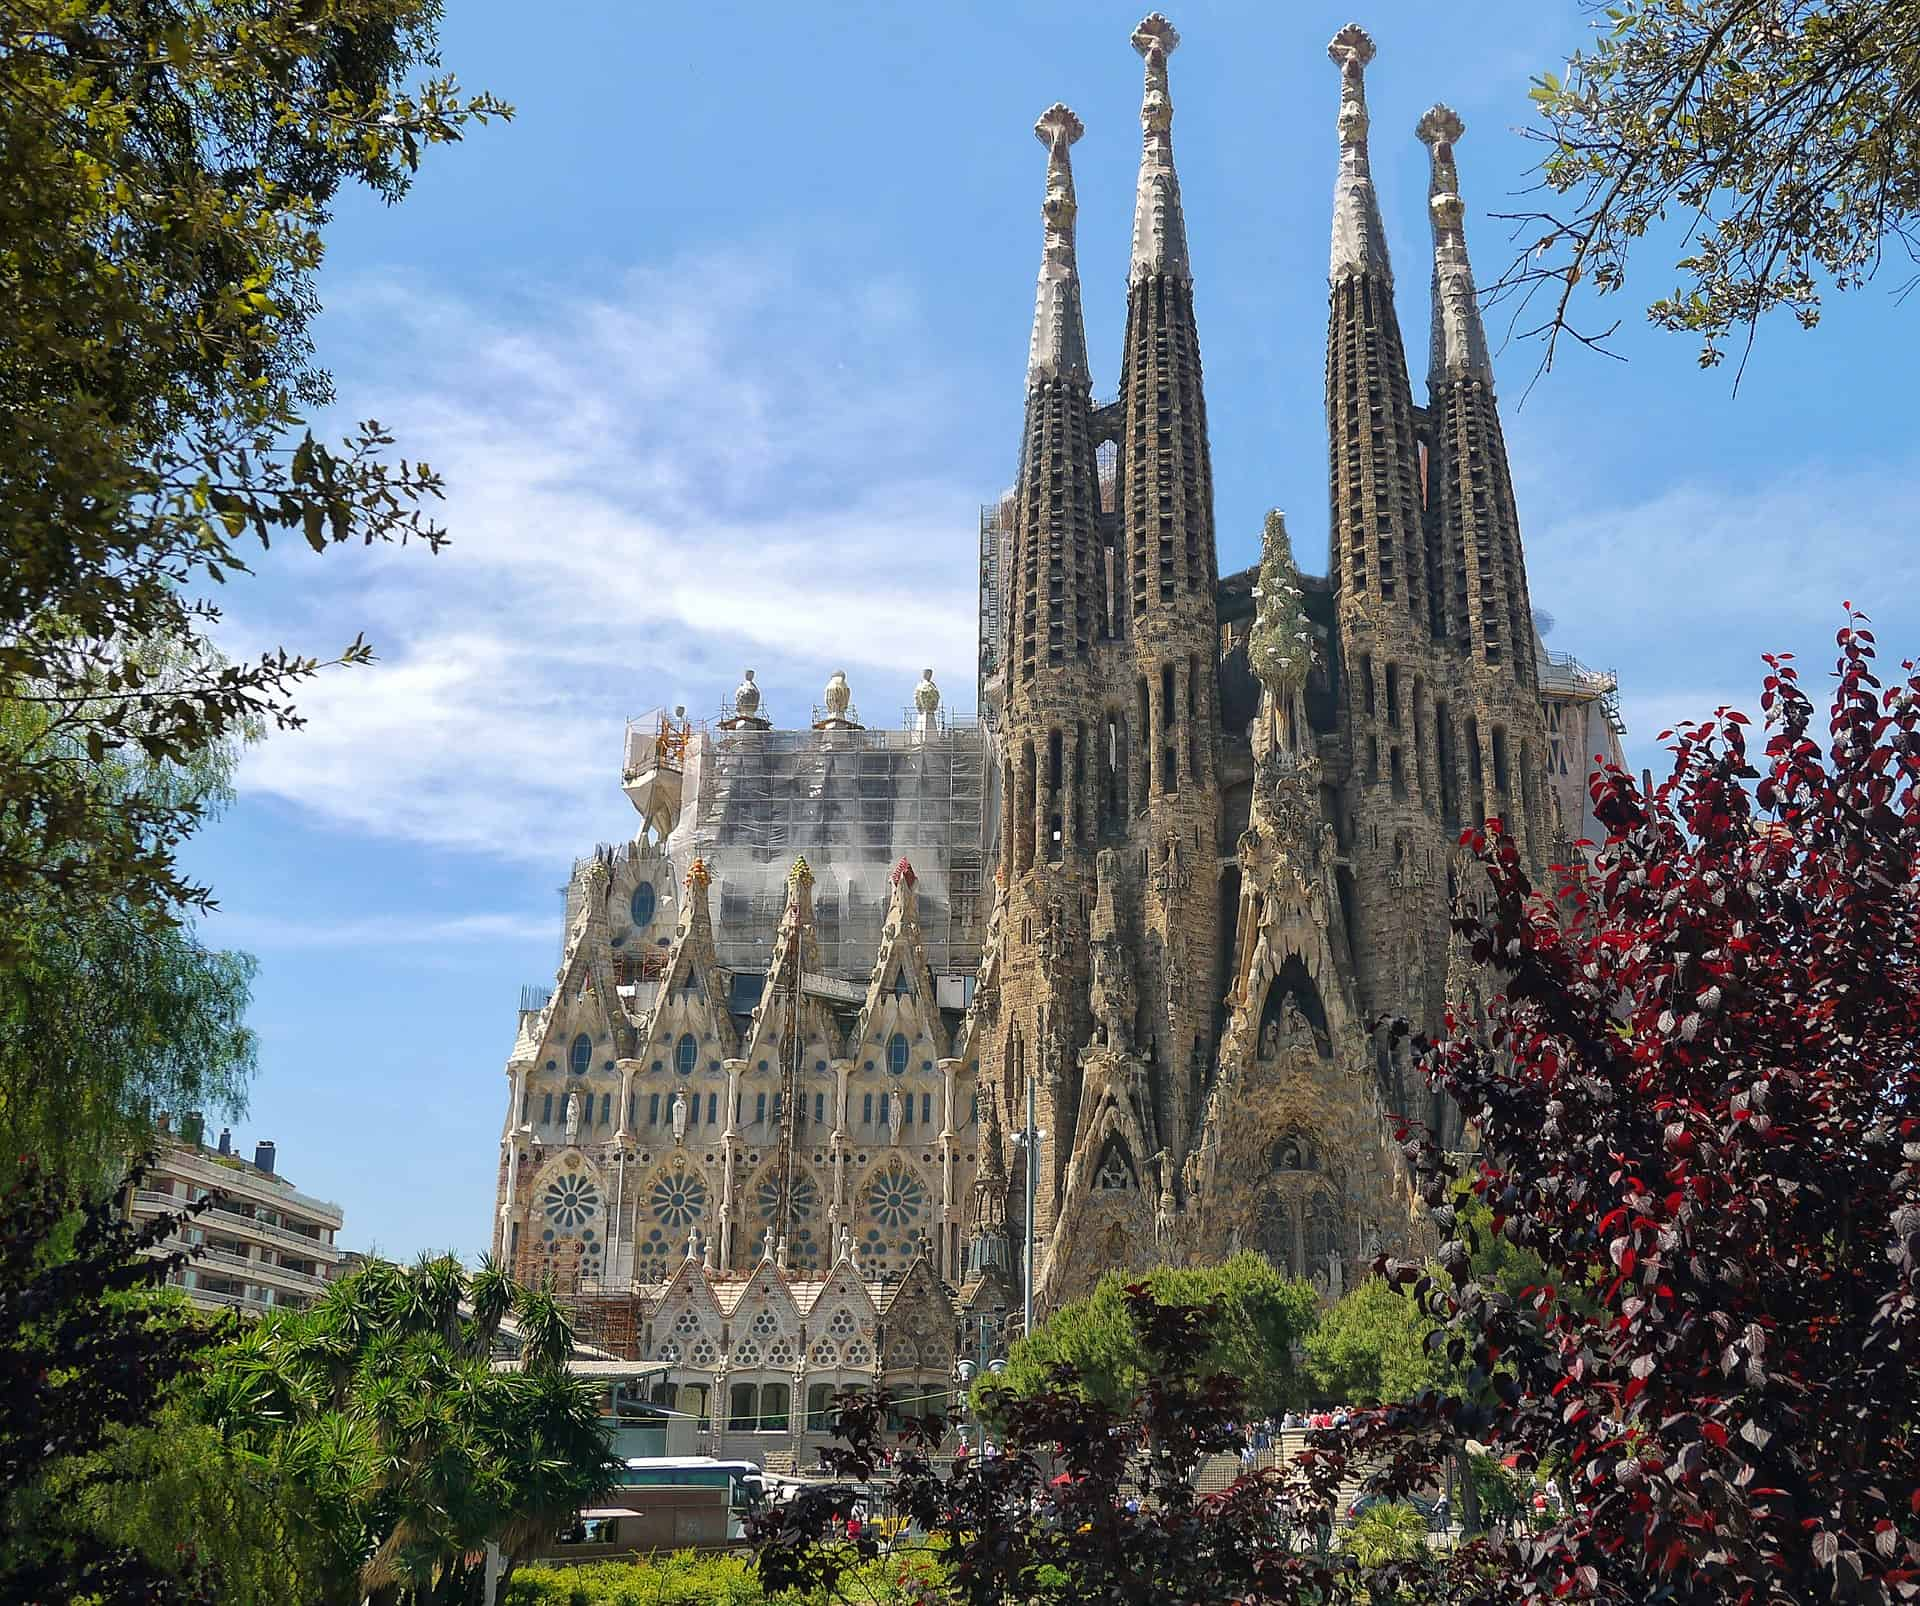 The Sagrada Familia, still under construction